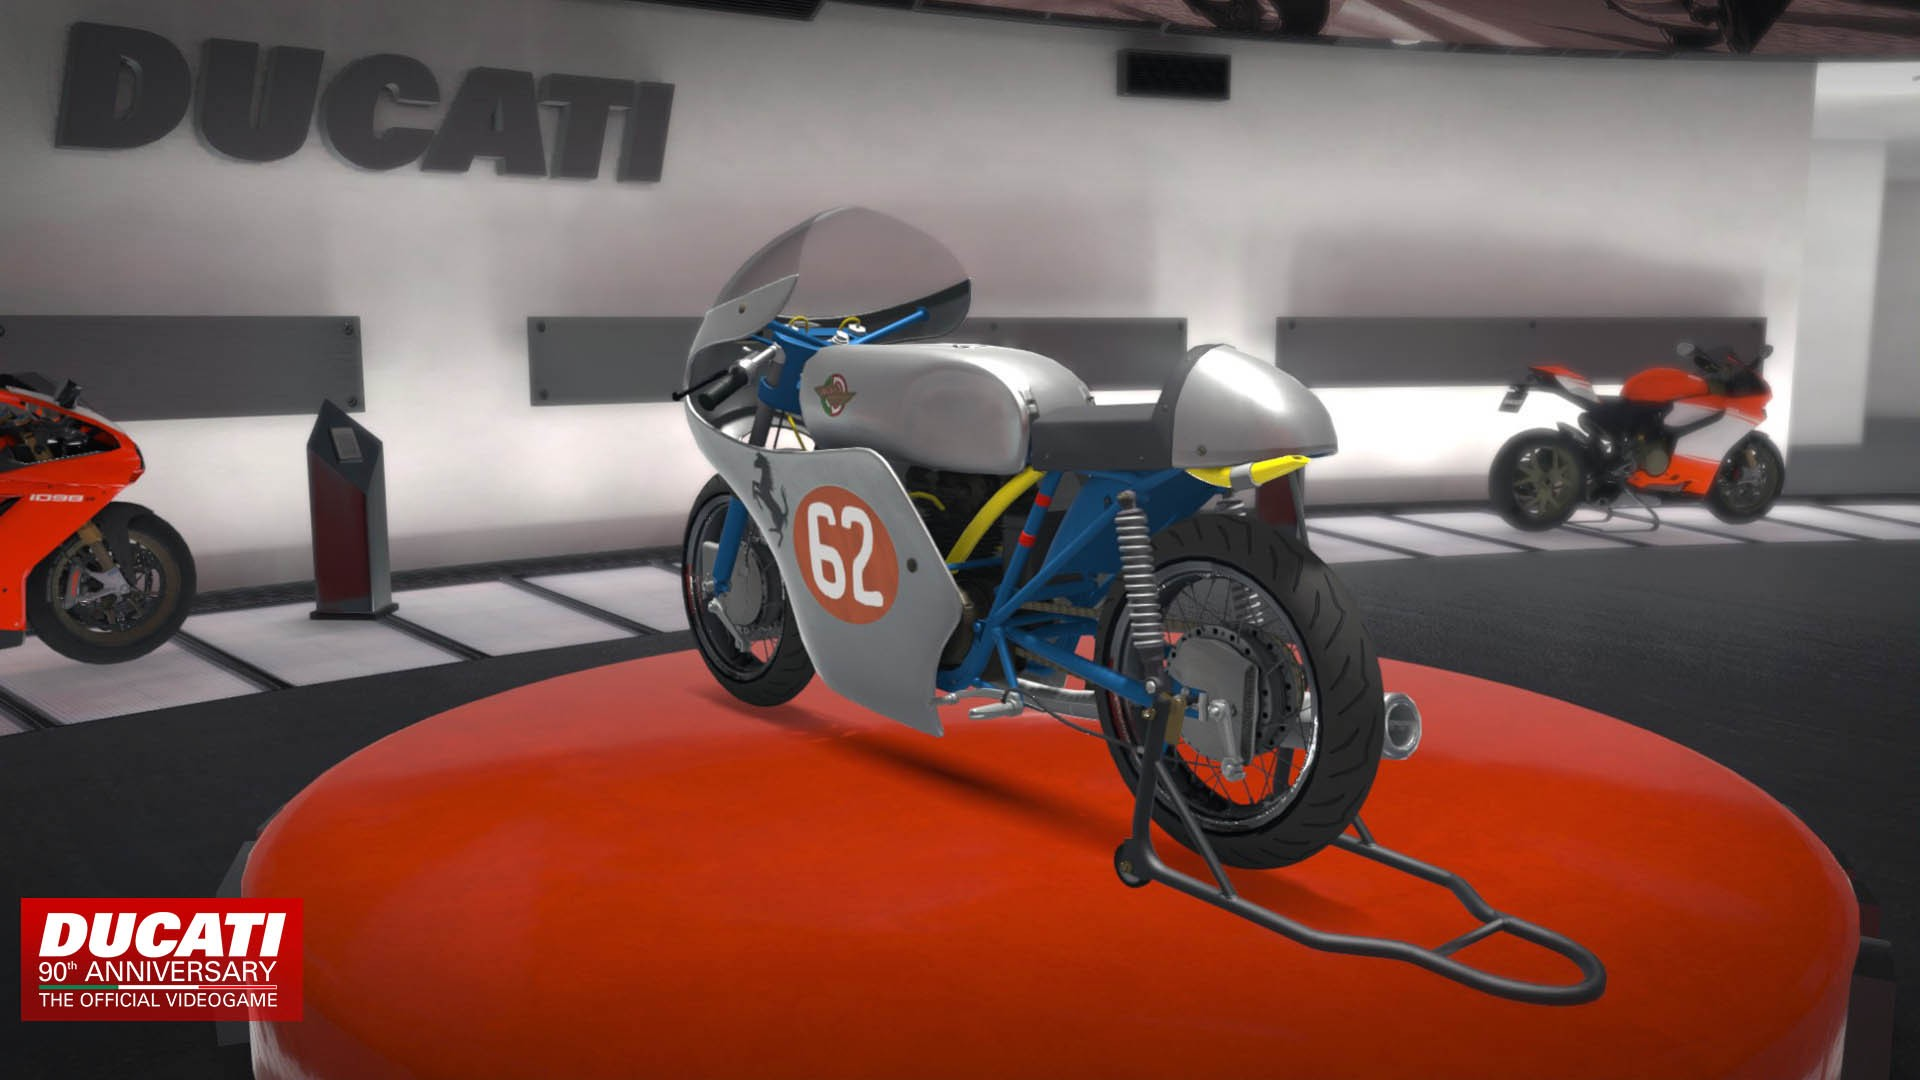 ducati-90th-anniversary-the-official-videogame-arrives-in-june_1